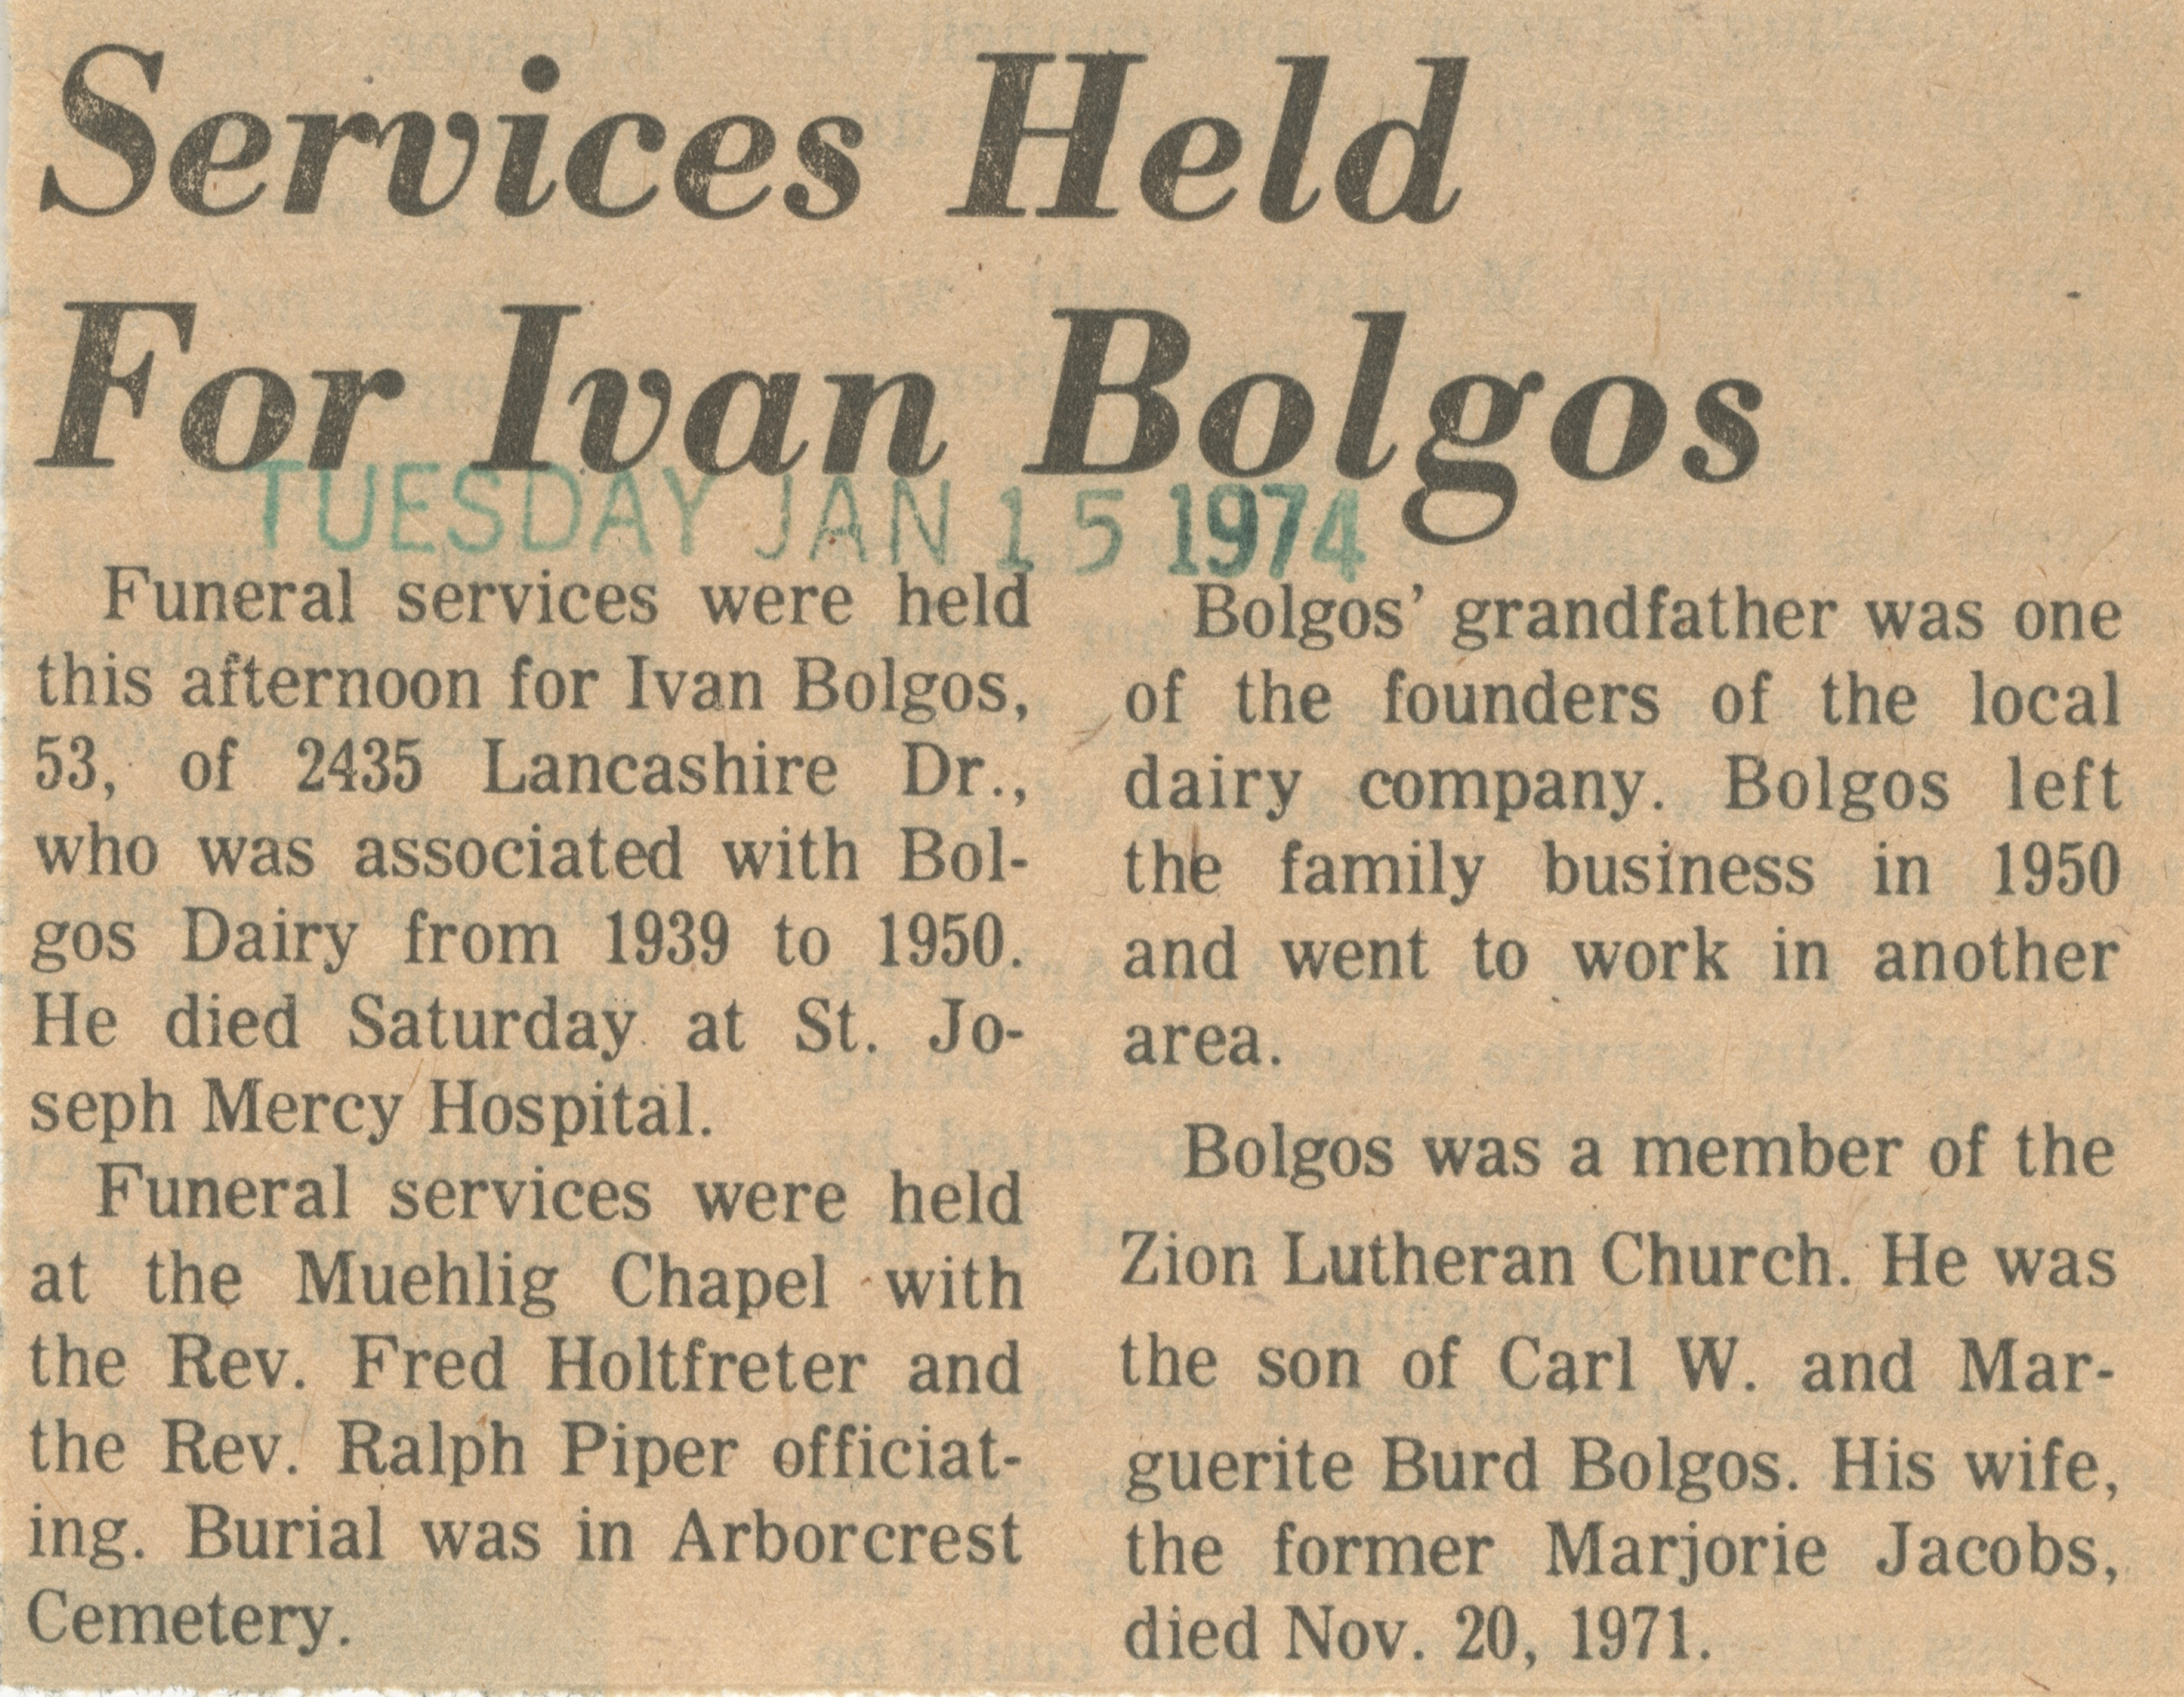 Services Held For Ivan Bolgos image